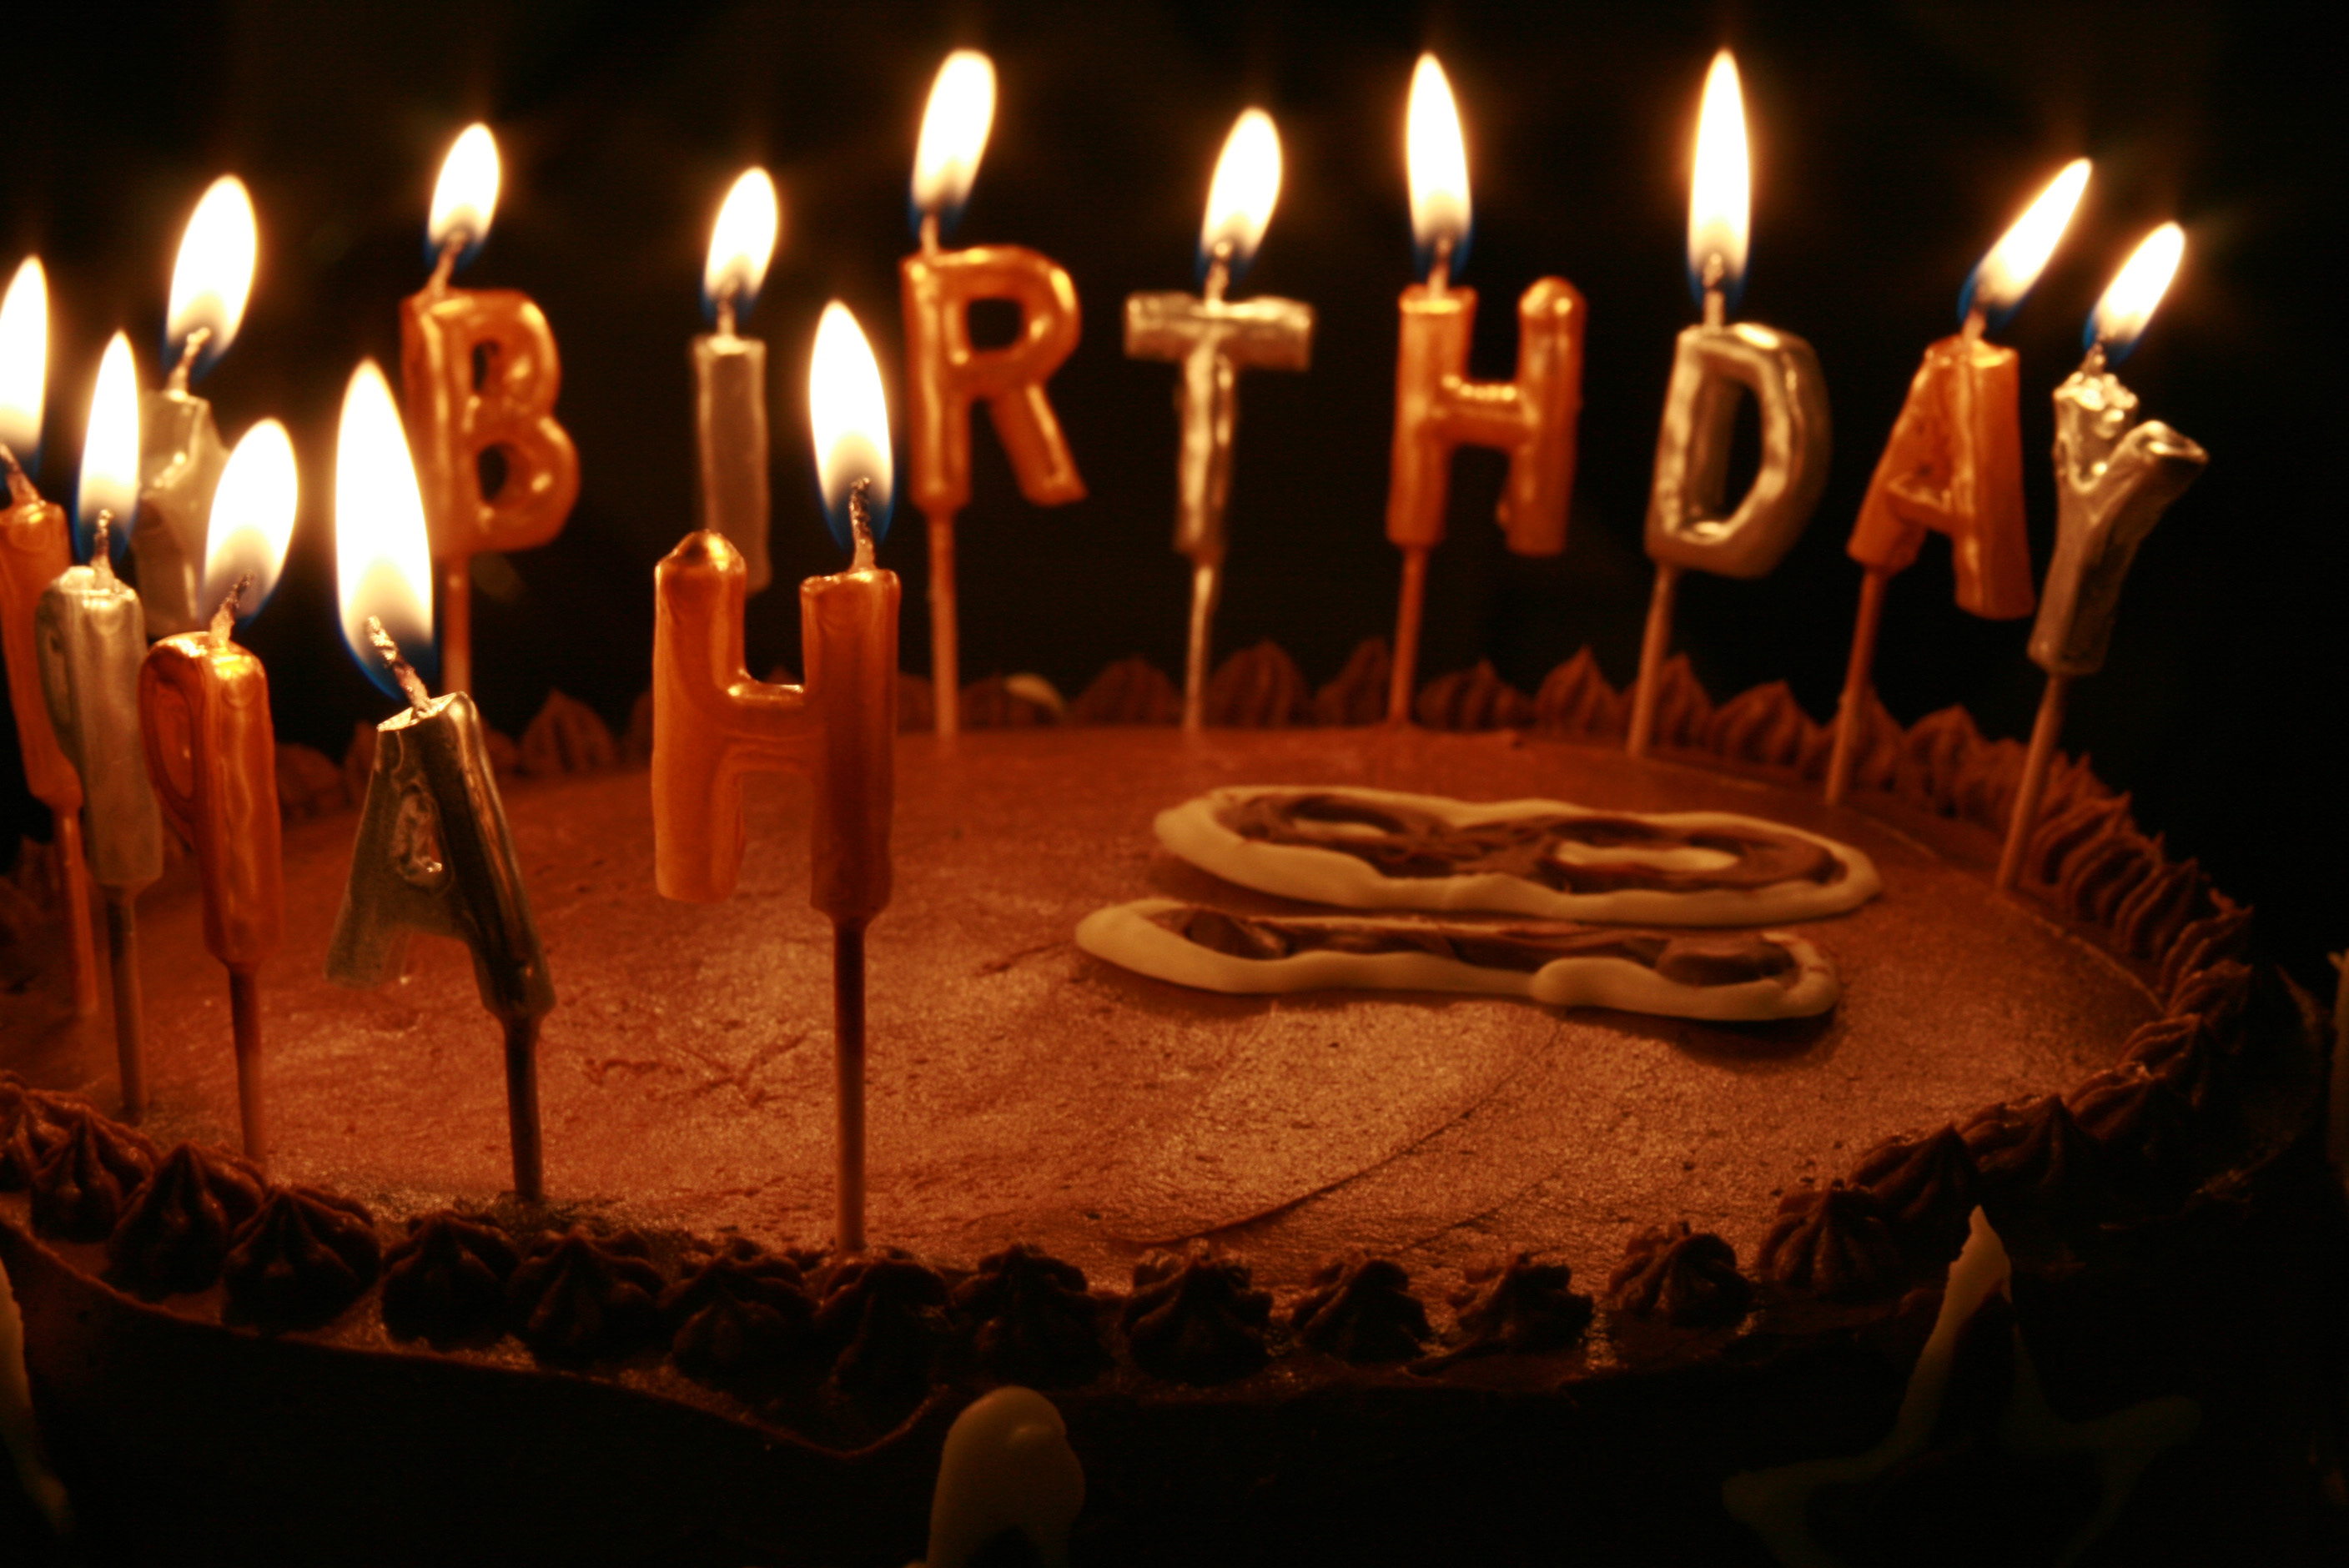 birthday wallpapers, pictures, images for digital devices